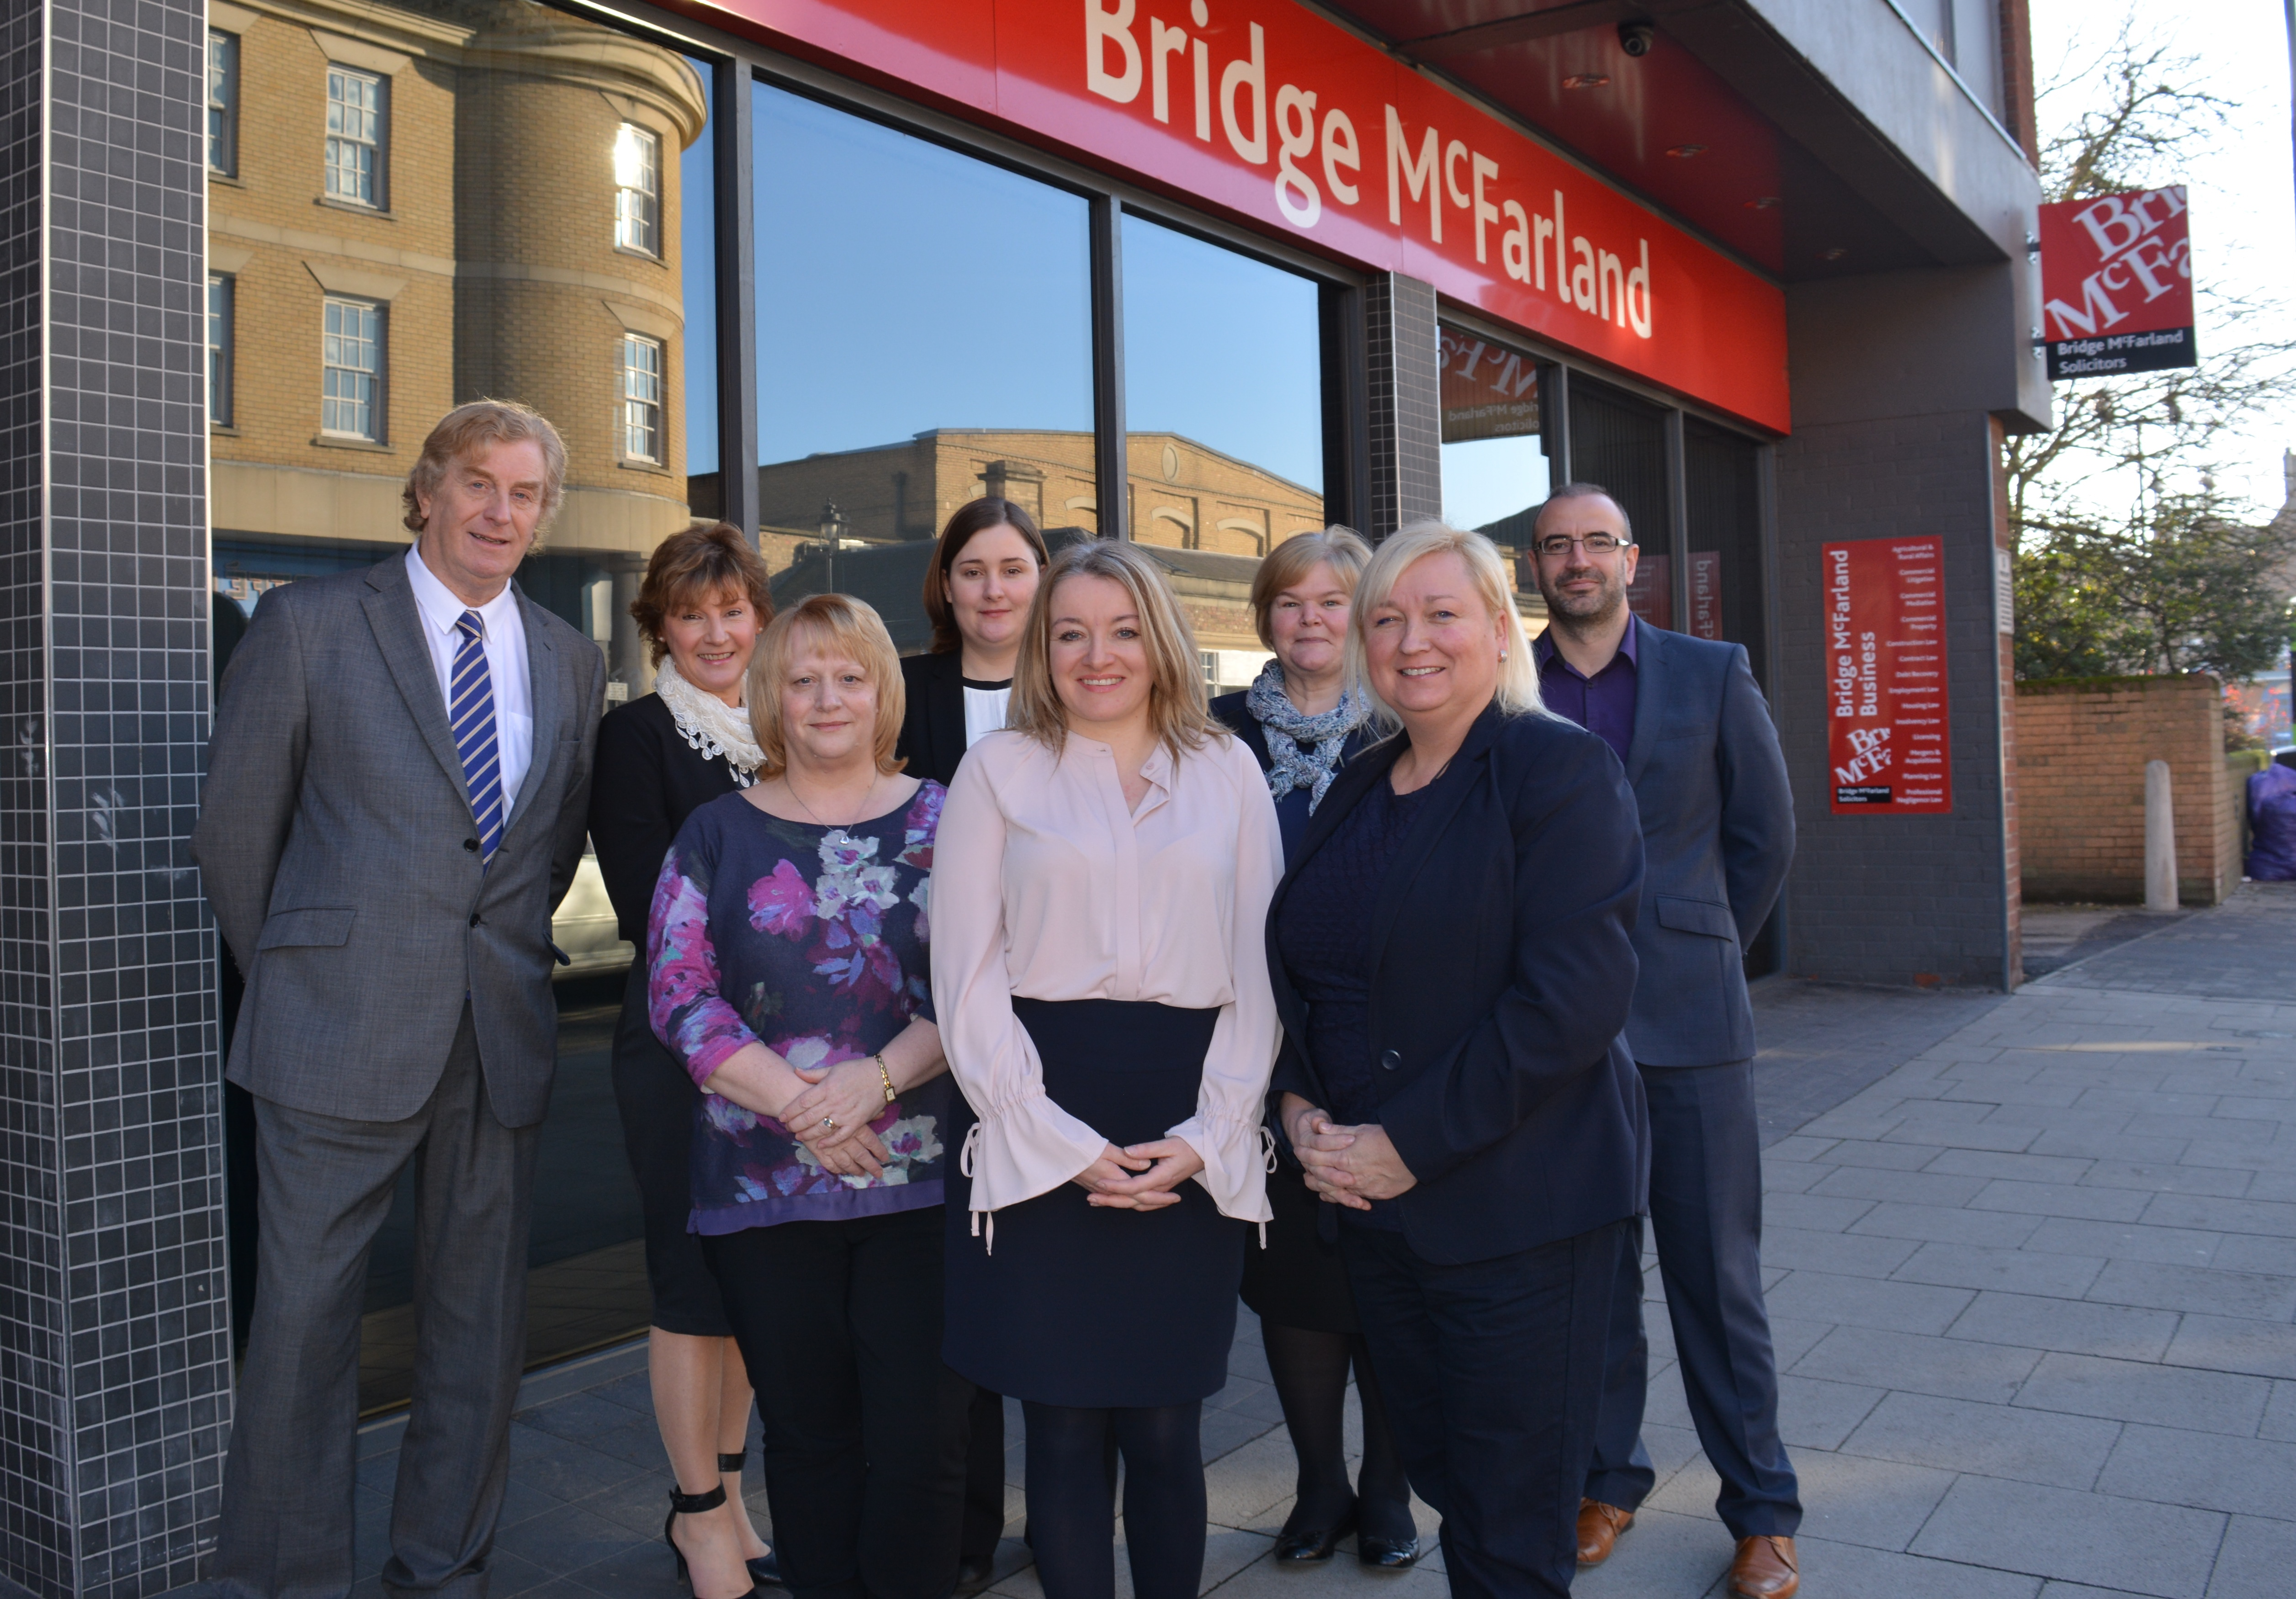 Bridge McFarland announce Downes and Siddall merger